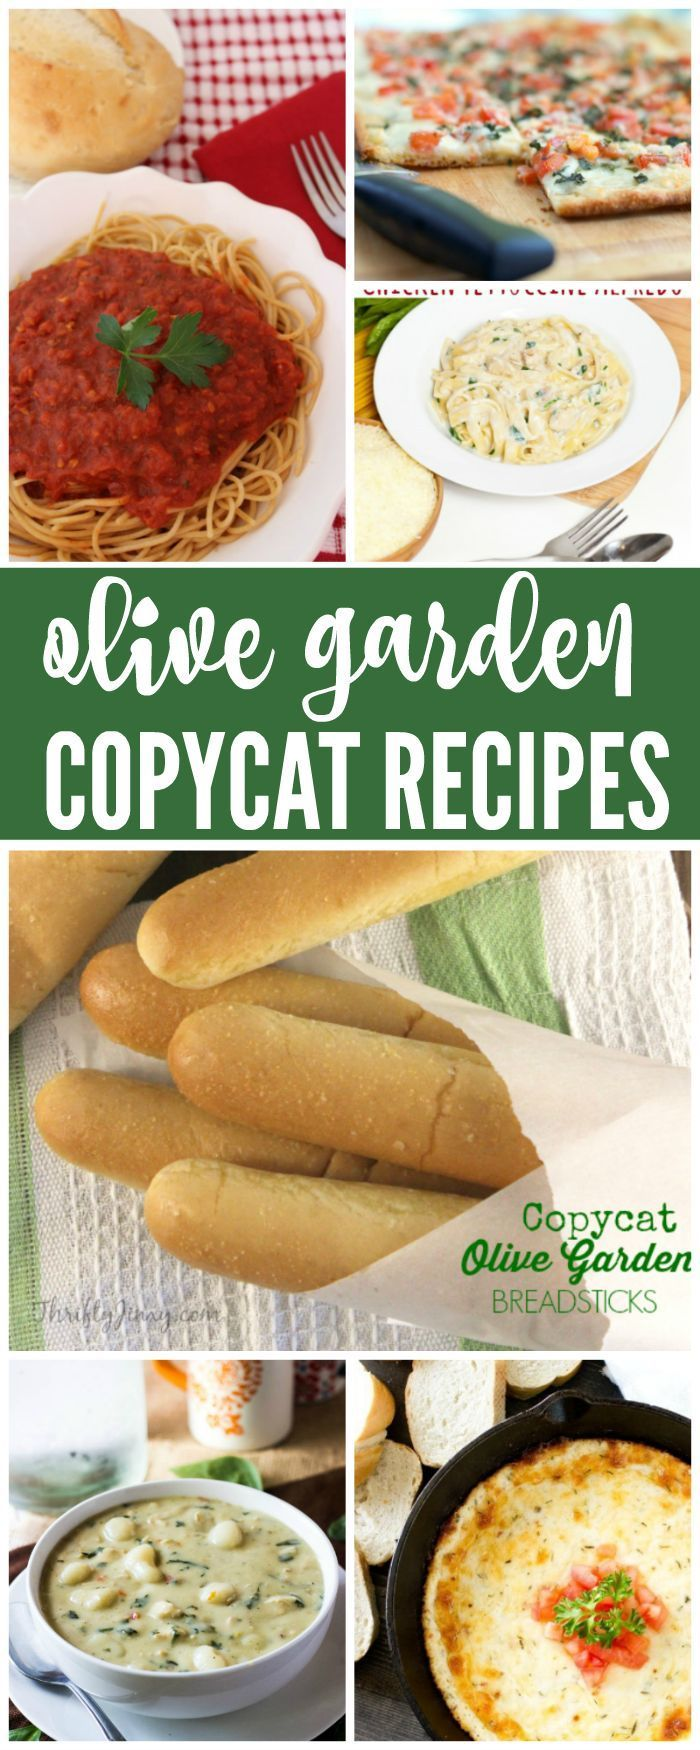 Best 25 Olive Garden Soups Ideas On Pinterest Olive Lunch Recipe Olive Garden Food And